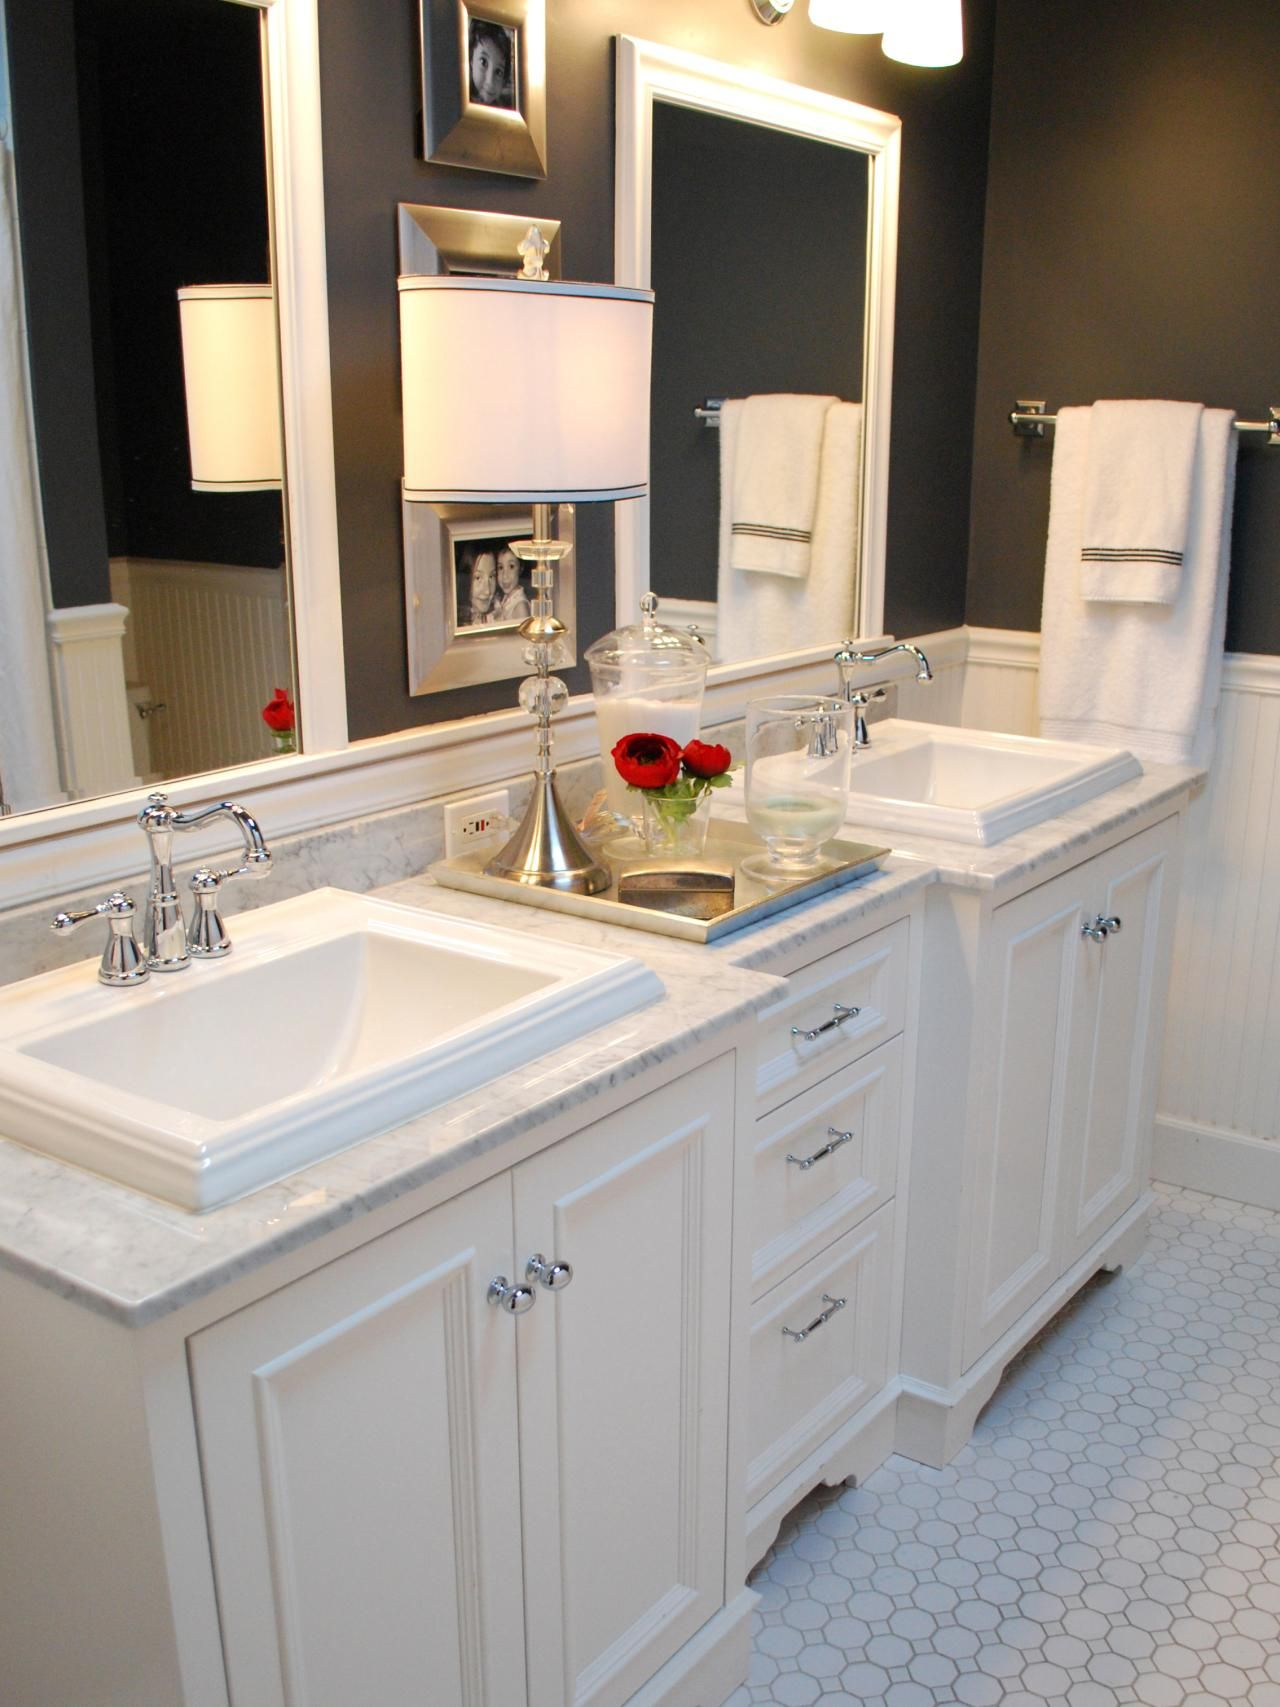 Black and White Bathroom Designs | Bathroom Ideas & Design with Vanities, Tile, Cabinets, Sinks | HGTV